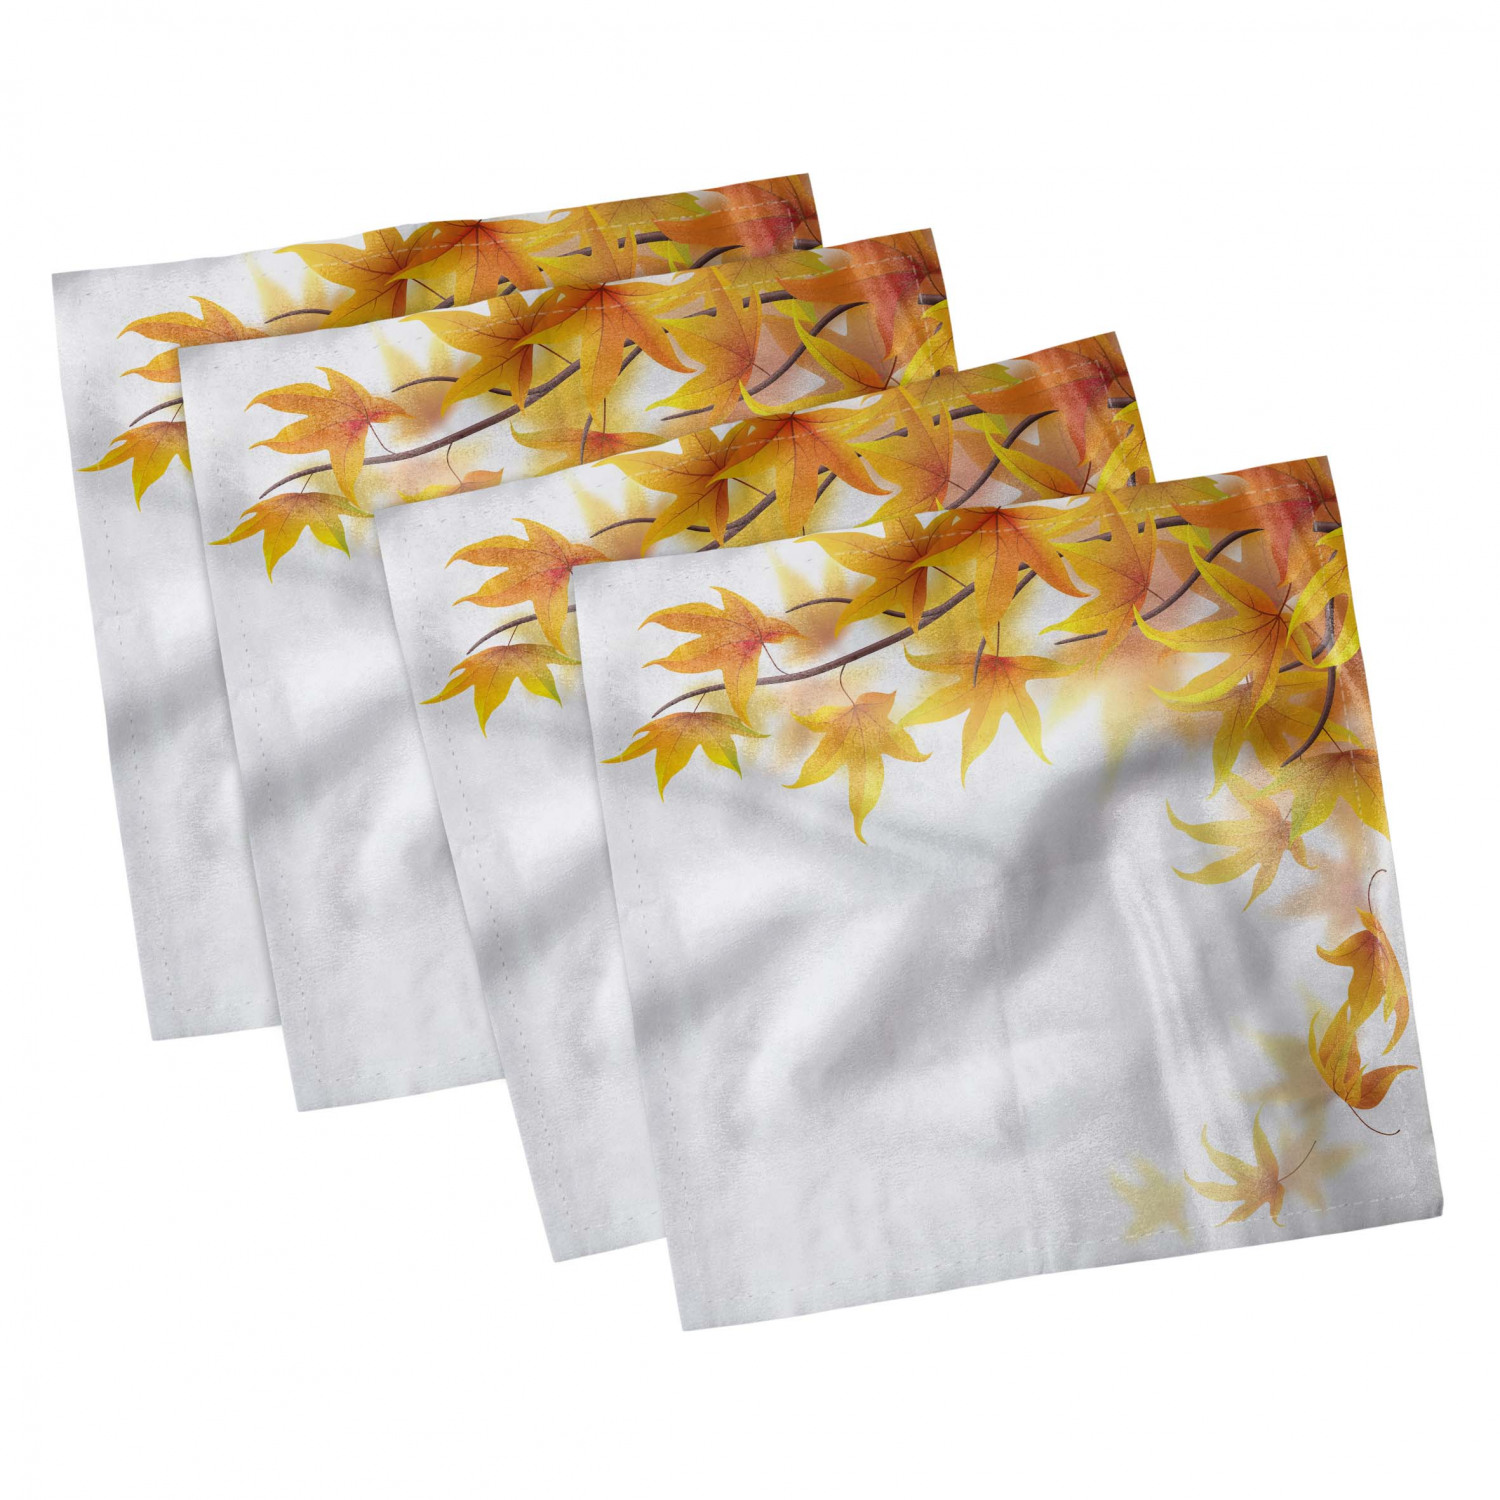 thumbnail 75 - Ambesonne Autumn Fall Decorative Satin Napkins Set of 4 Party Dinner Fabric